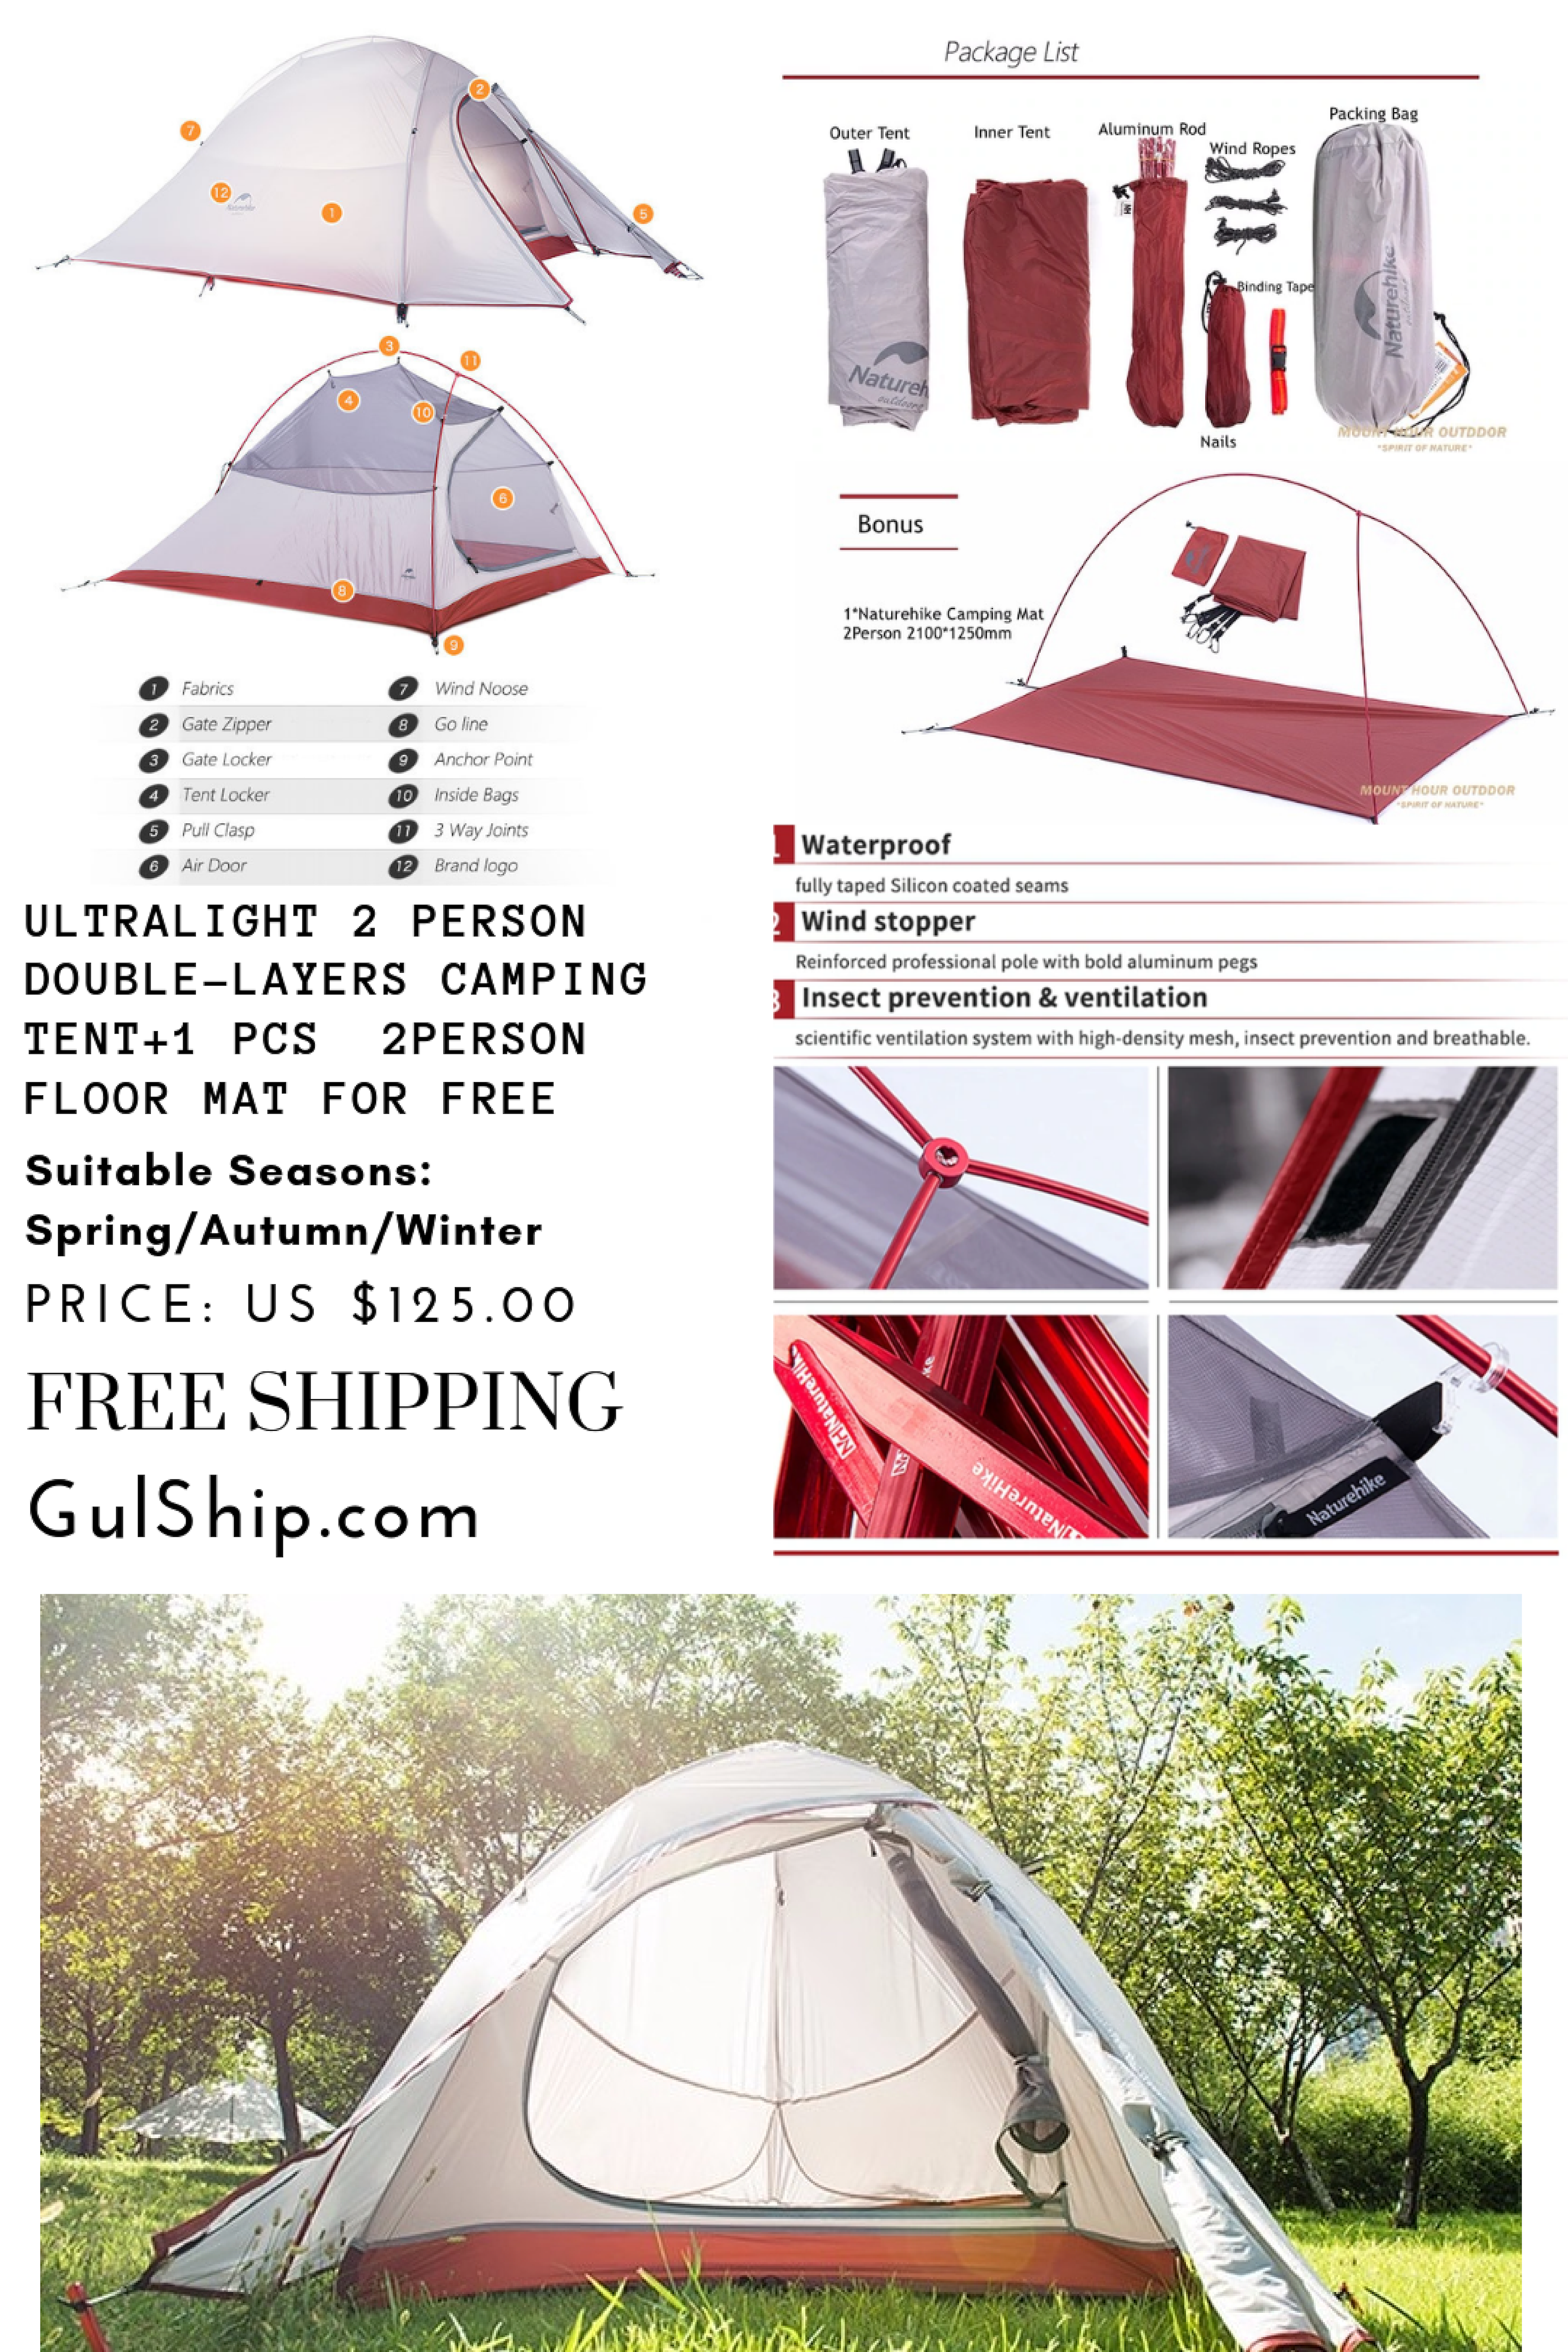 1 2KG Tent 20D Silicone Fabric Ultralight 2 Person Double